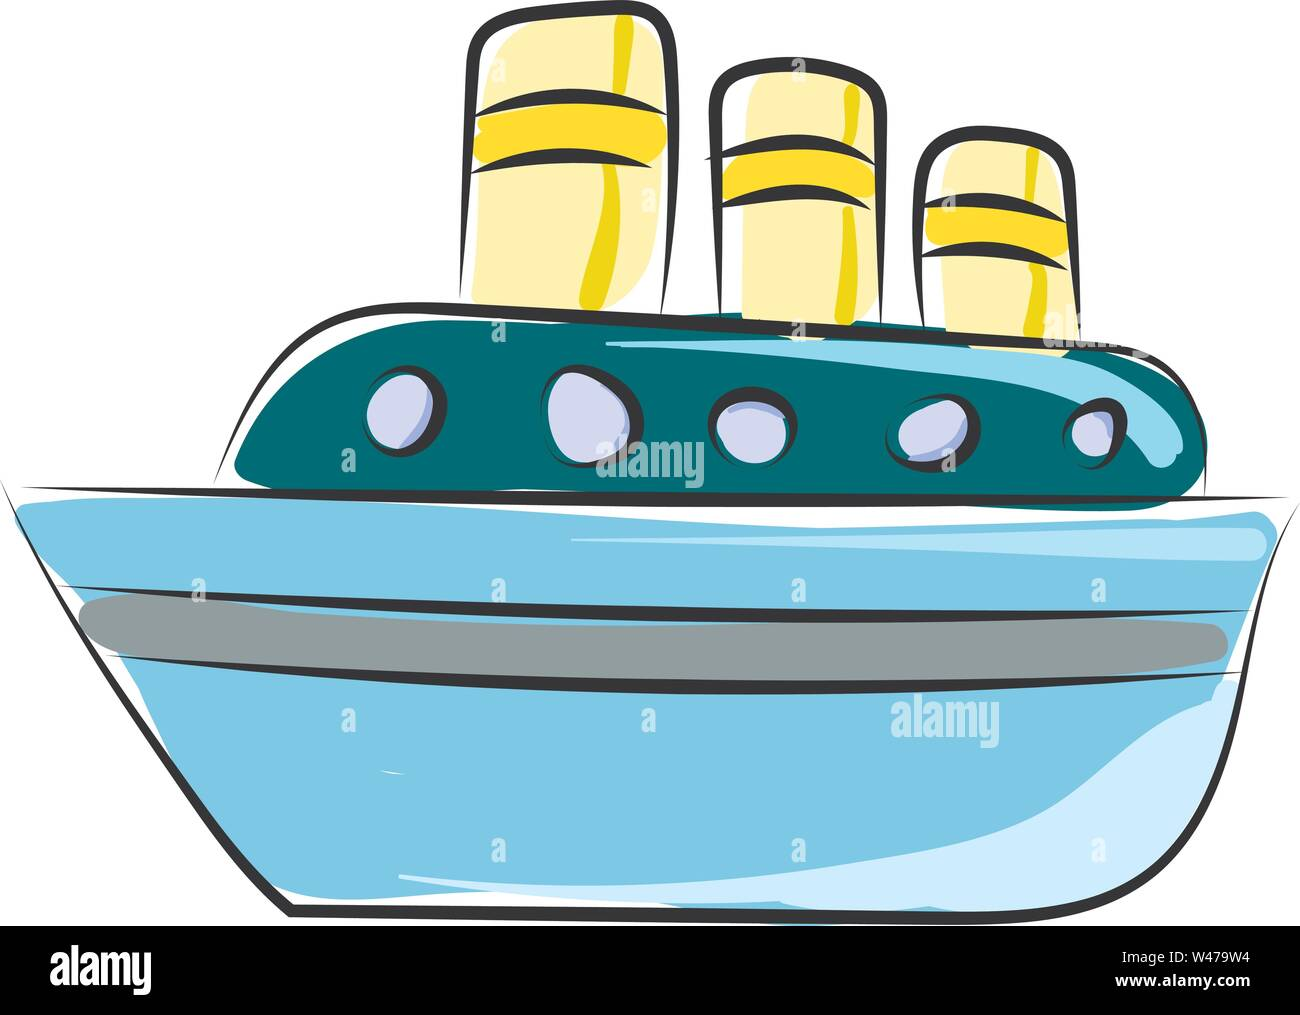 Ship on sea, illustration, vector on white background. - Stock Image